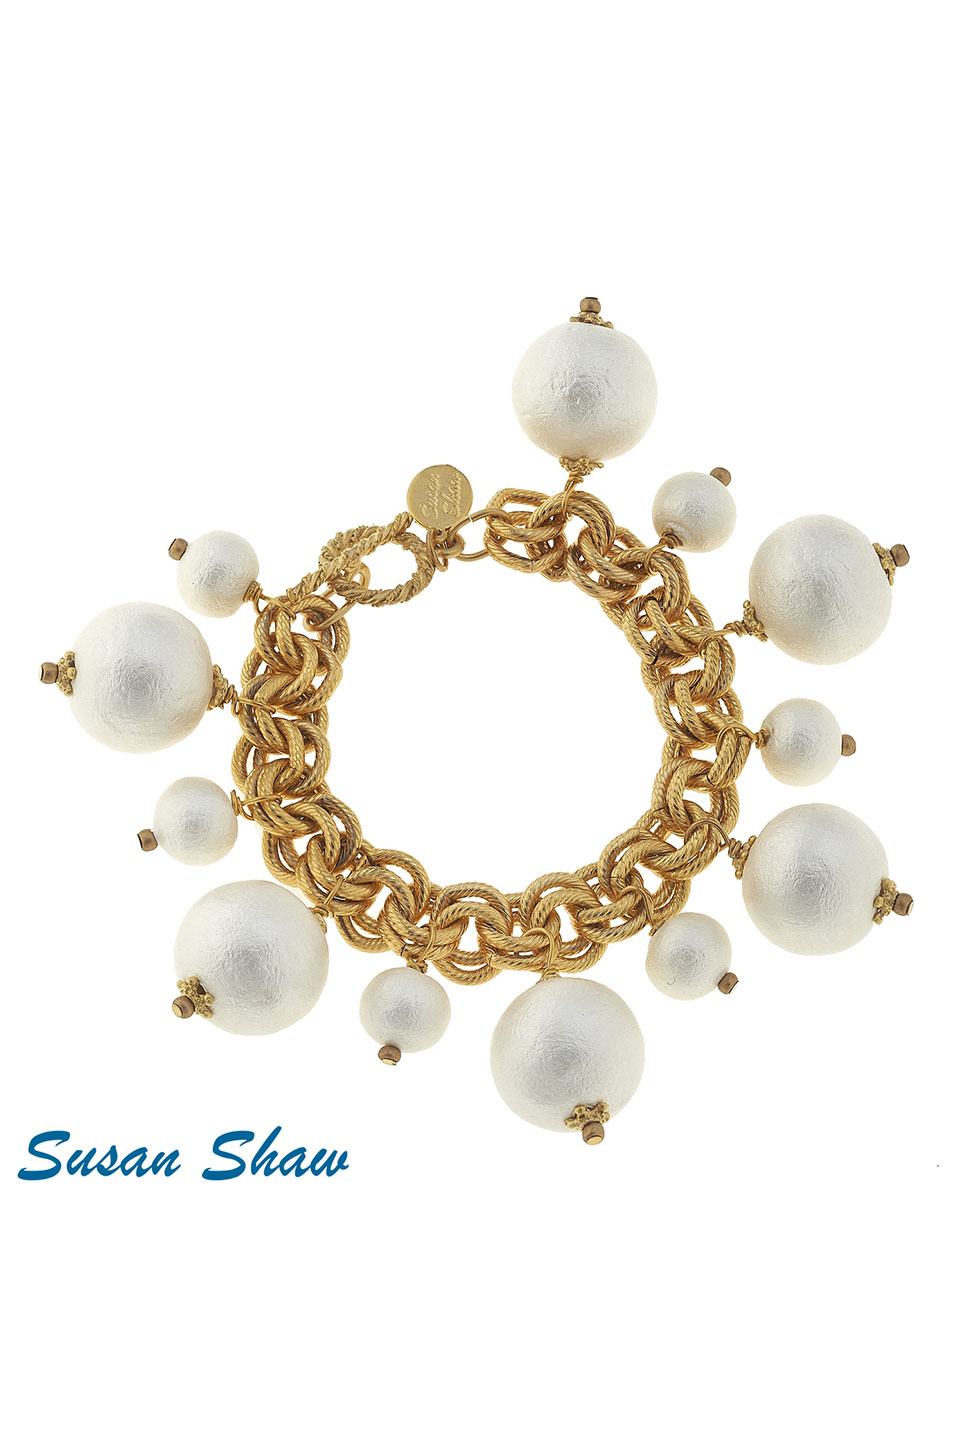 Susan Shaw Gold with Multi-cotton Pearls Bracelet